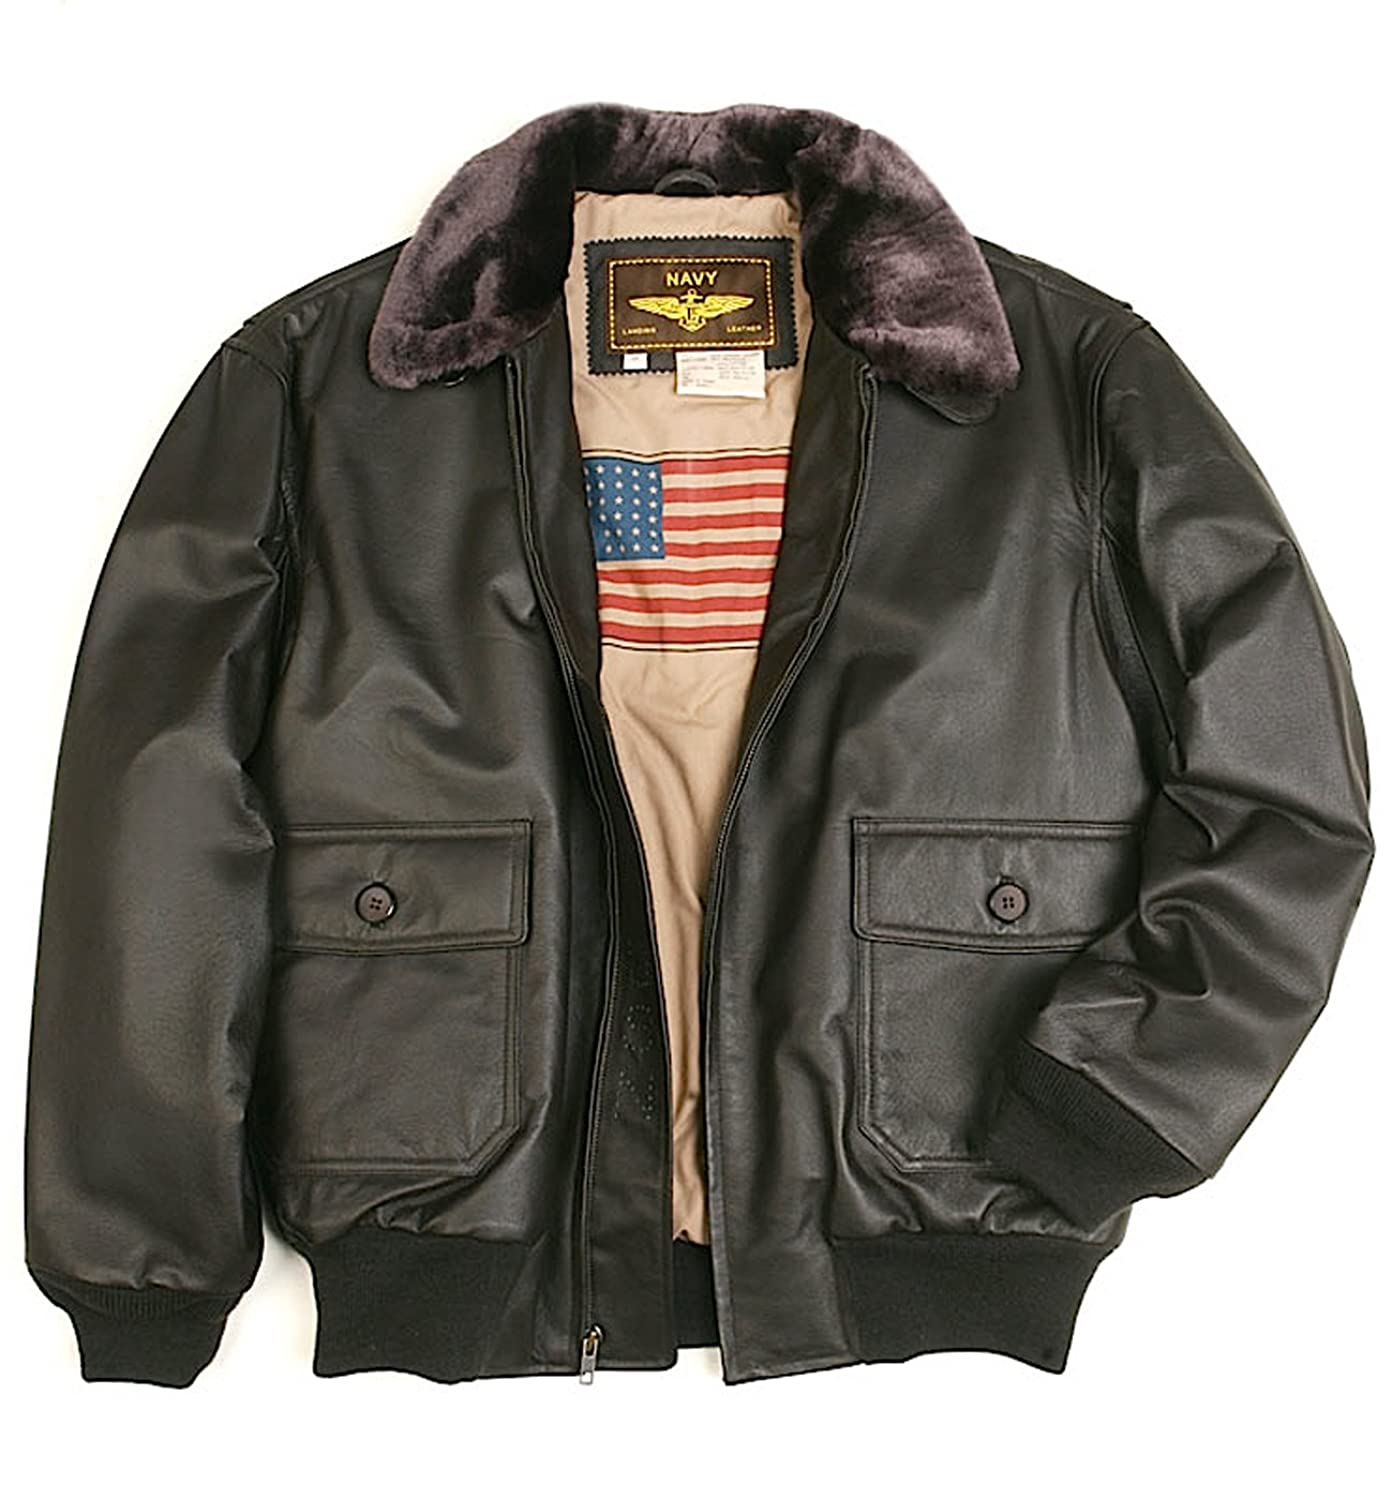 Good &quotbomber jacket&quot? : malefashionadvice